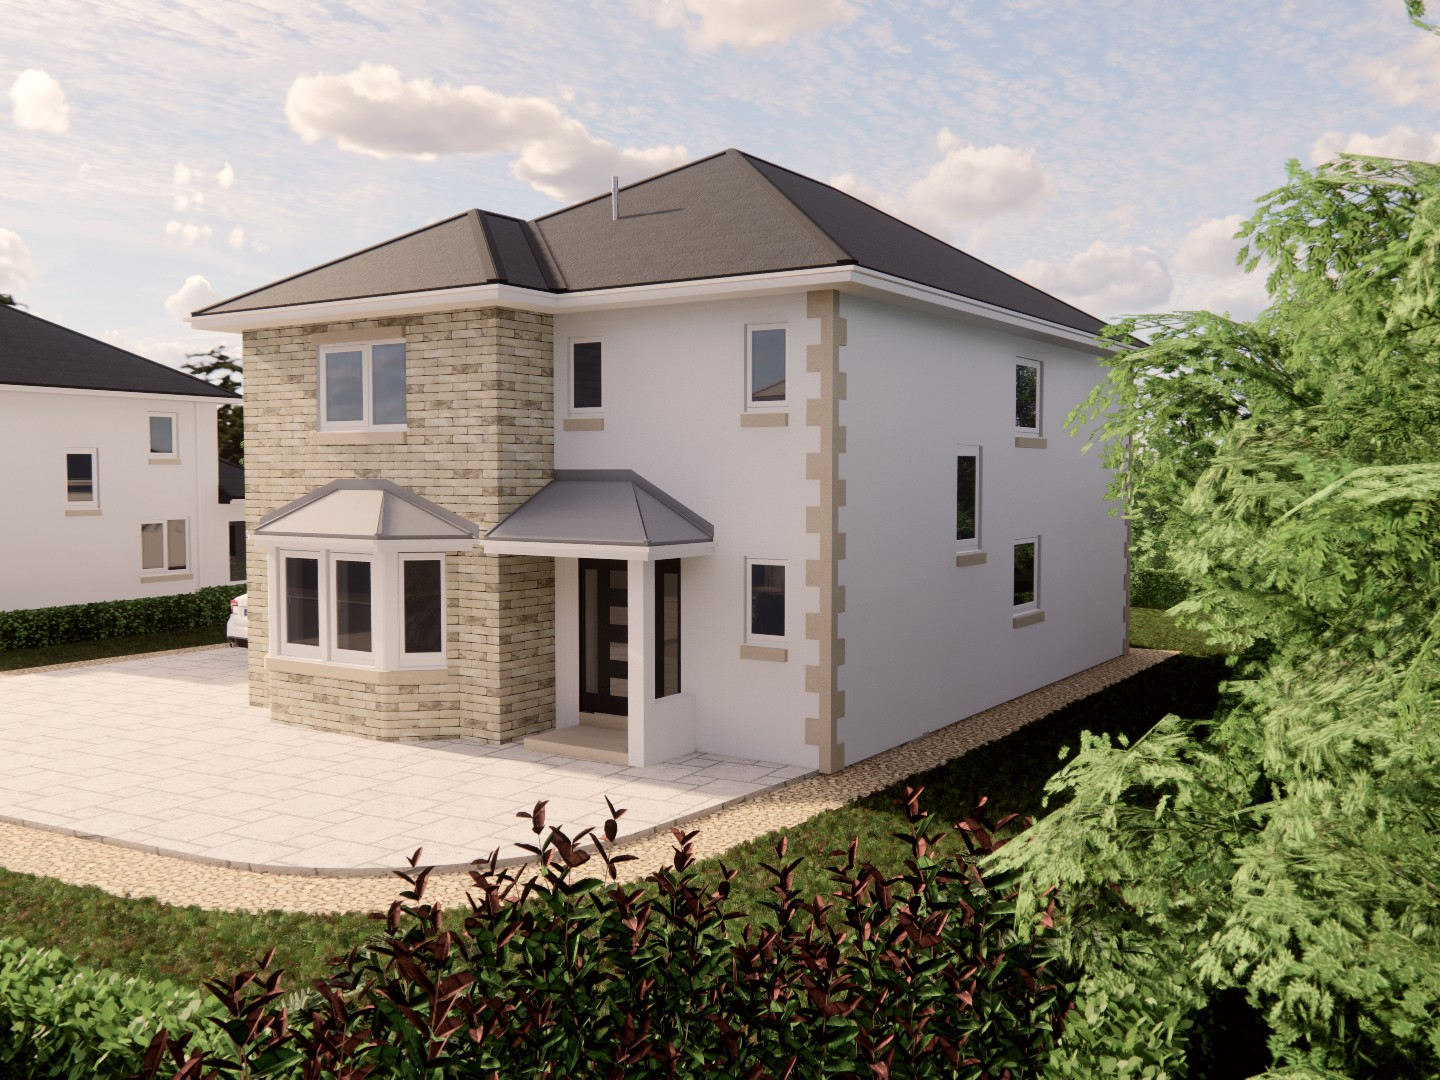 exterior view of The Linhope 4 bedroom detached house for sale Village Meadows Lowick Northumberland